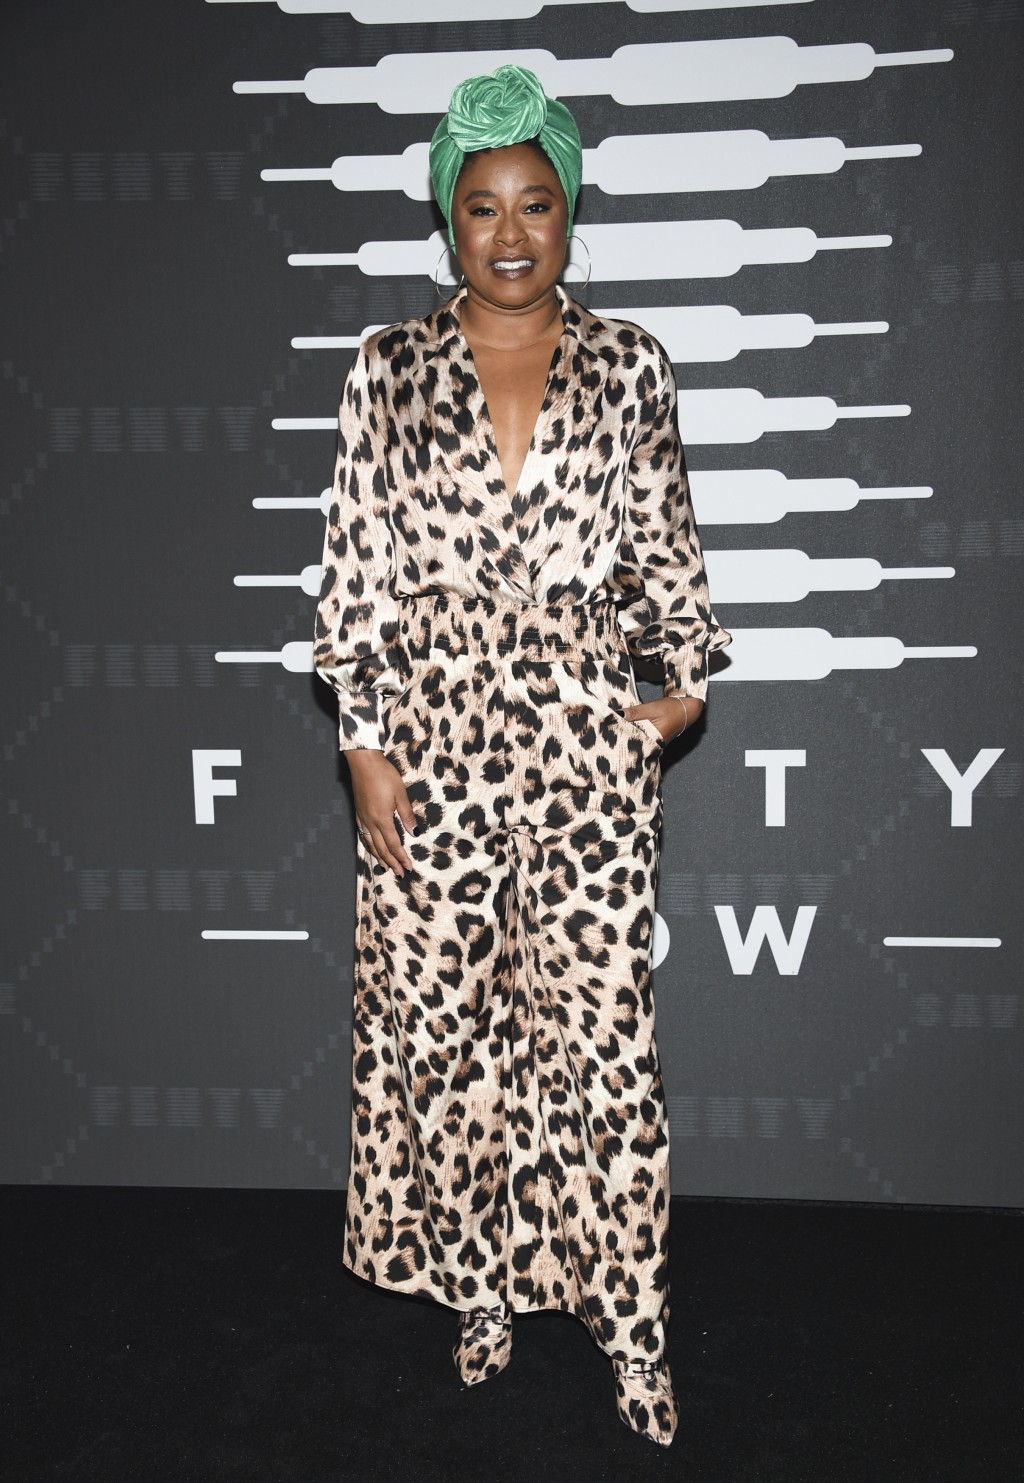 Comedian Phoebe Robinson attends the Spring/Summer 2020 Savage X Fenty show, presented by Amazon Prime, at the Barclays Center on Tuesday, Sept, 10, 2